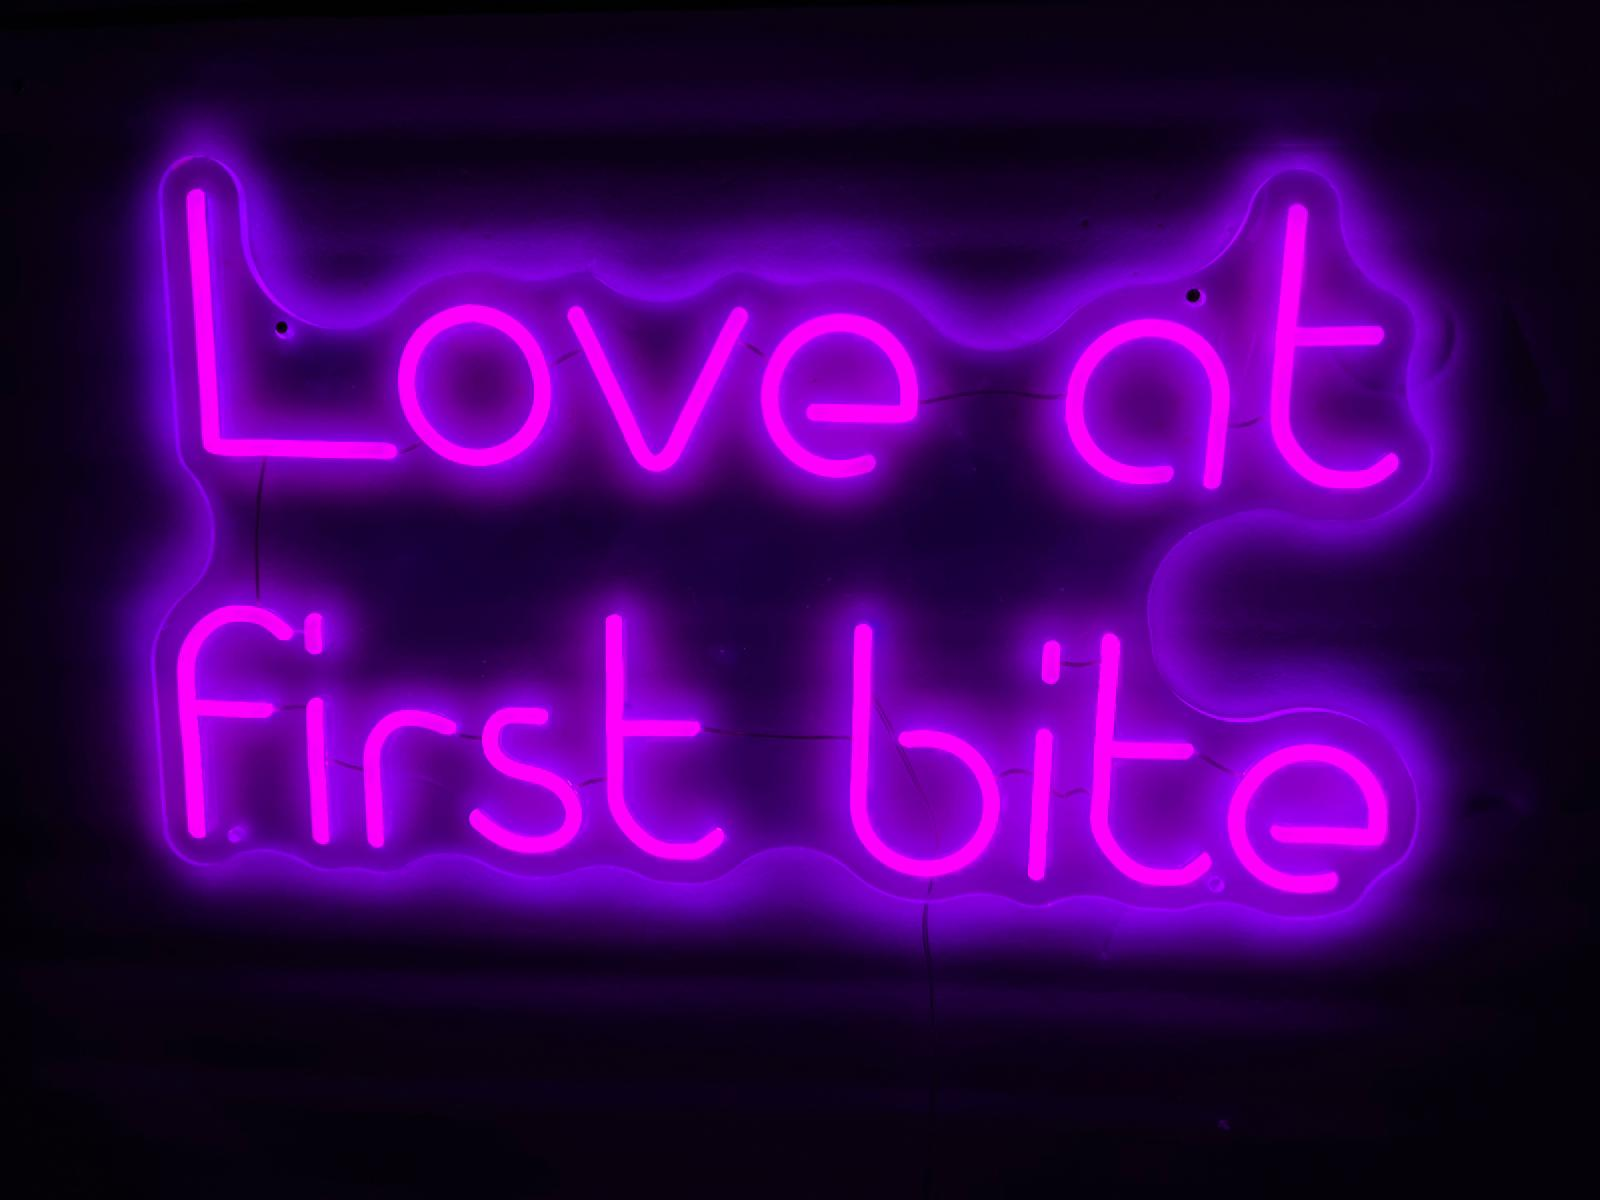 LED Neon Sign - Love at first bite